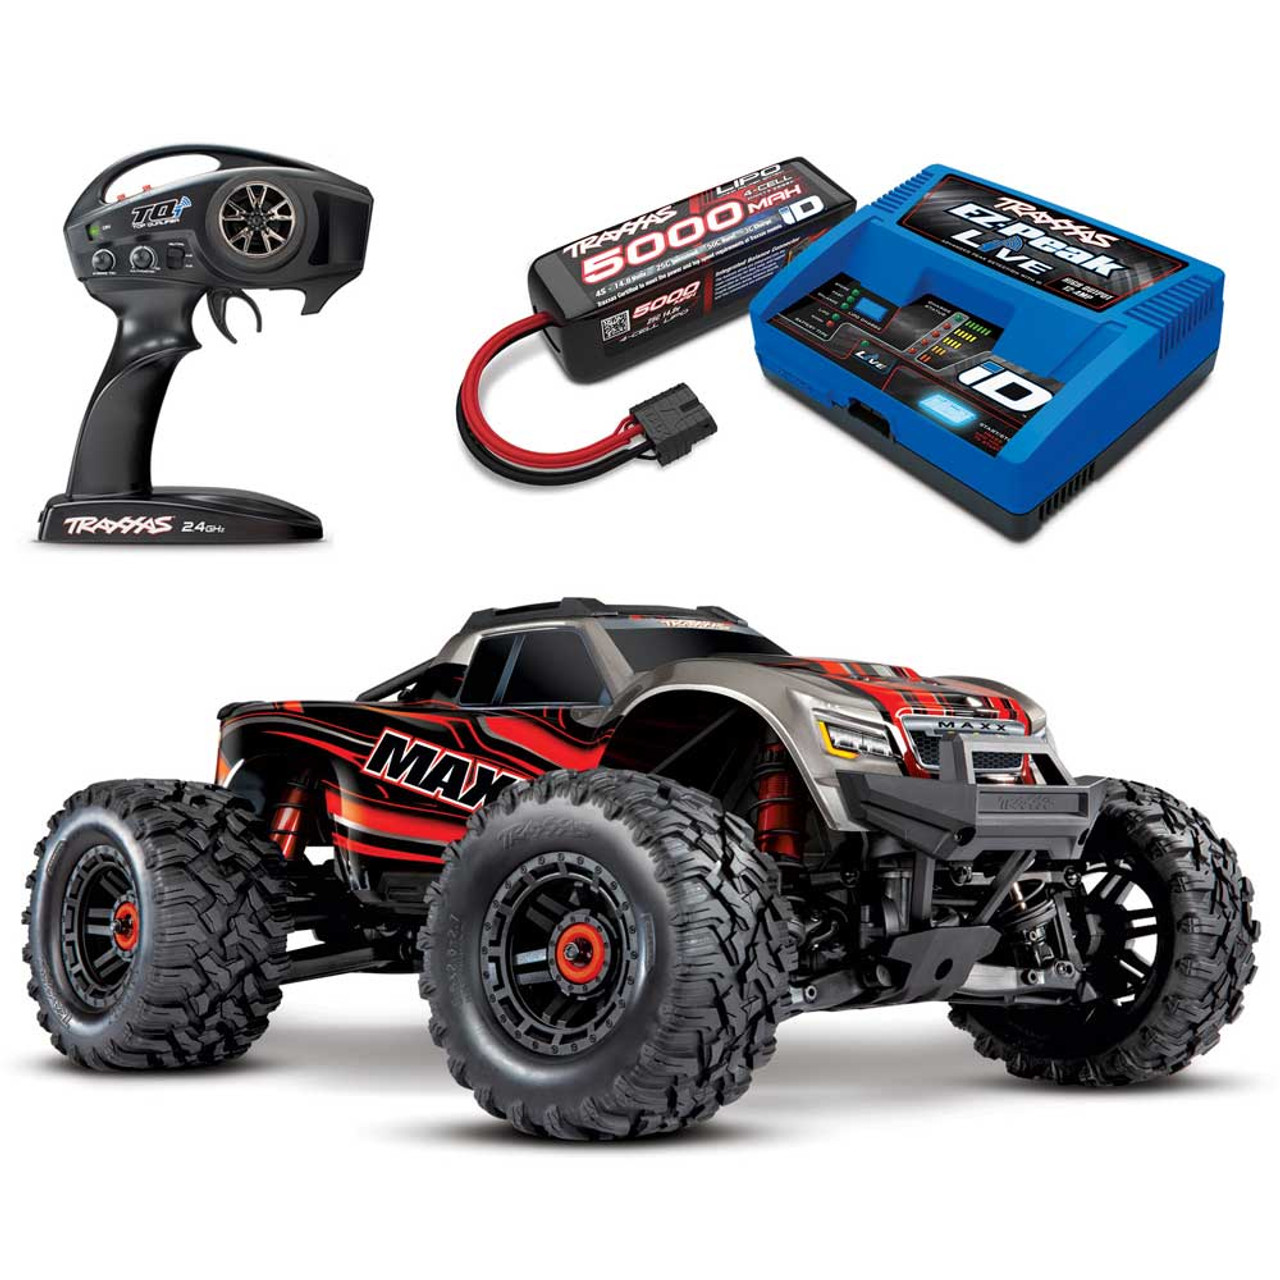 Traxxas Maxx 4s Rtr 4x4 Rc Monster Truck With 4s Lipo Battery Charger Combo Package Rc Off Road Monster Truck